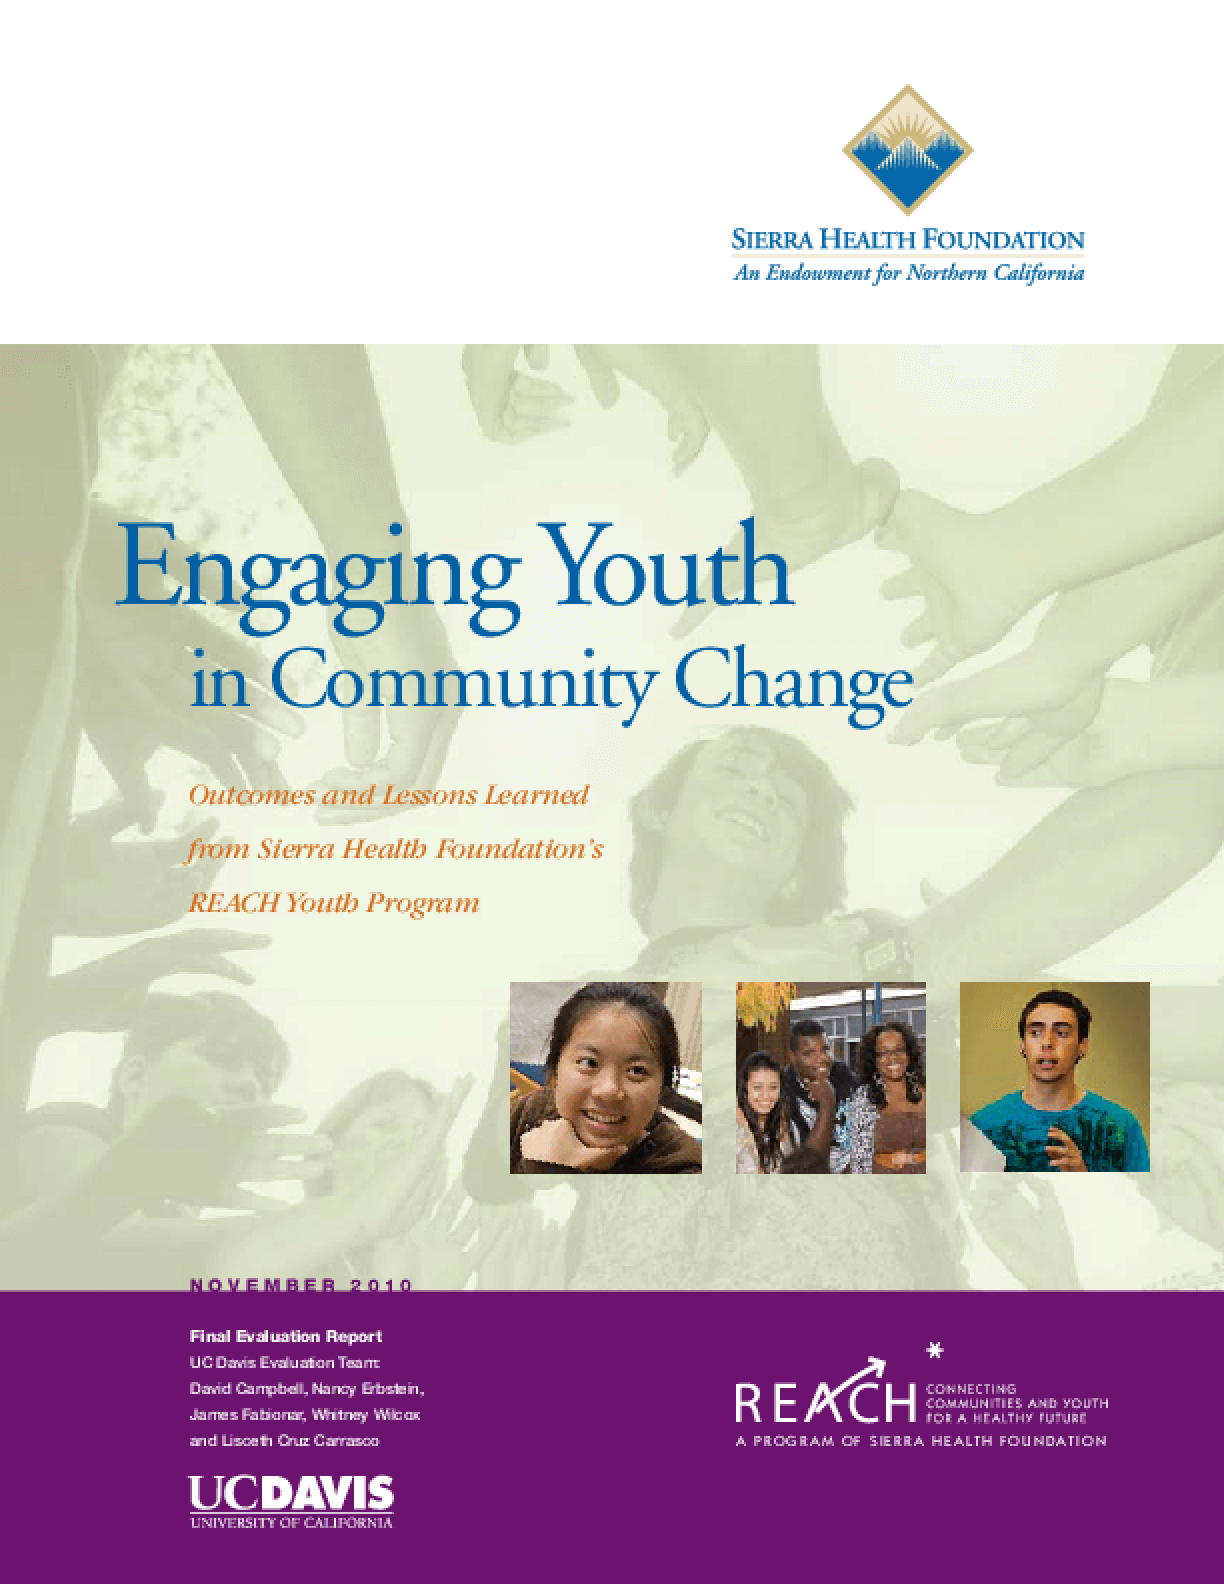 Engaging Youth in Community Change: Outcomes and Lessons Learned From Sierra Health Foundation's REACH Youth Program